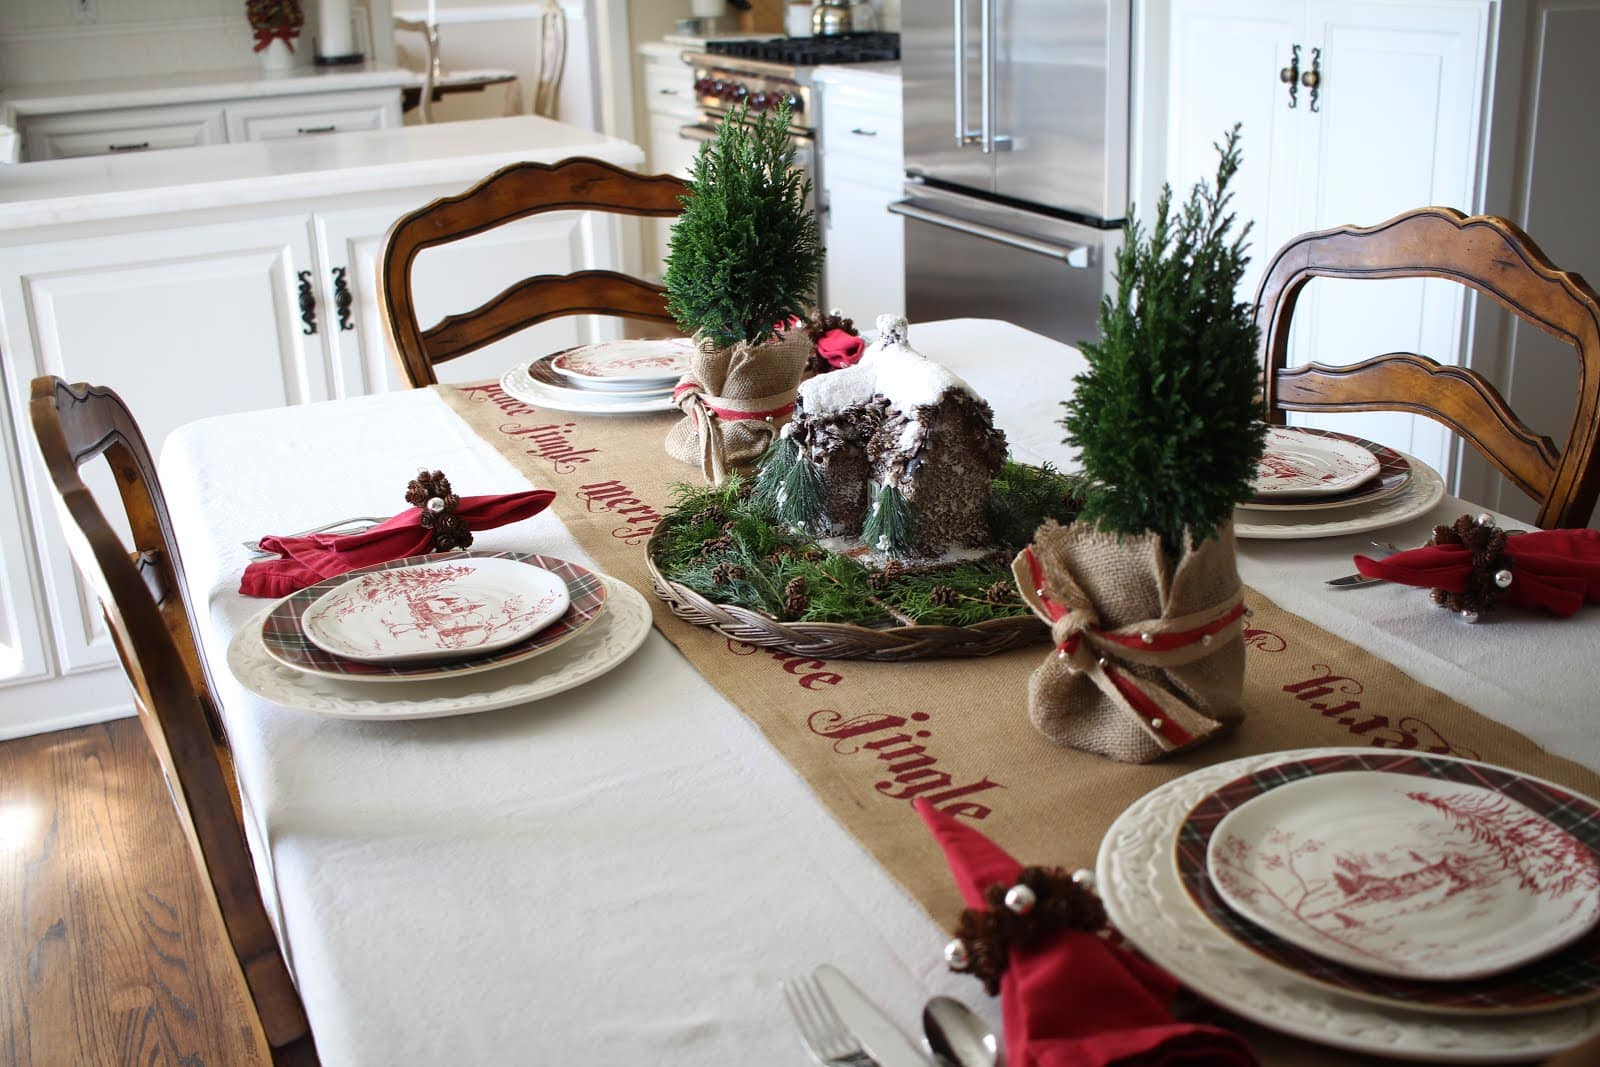 A Nature Inspired Christmas Tablescape Featuring Plaid